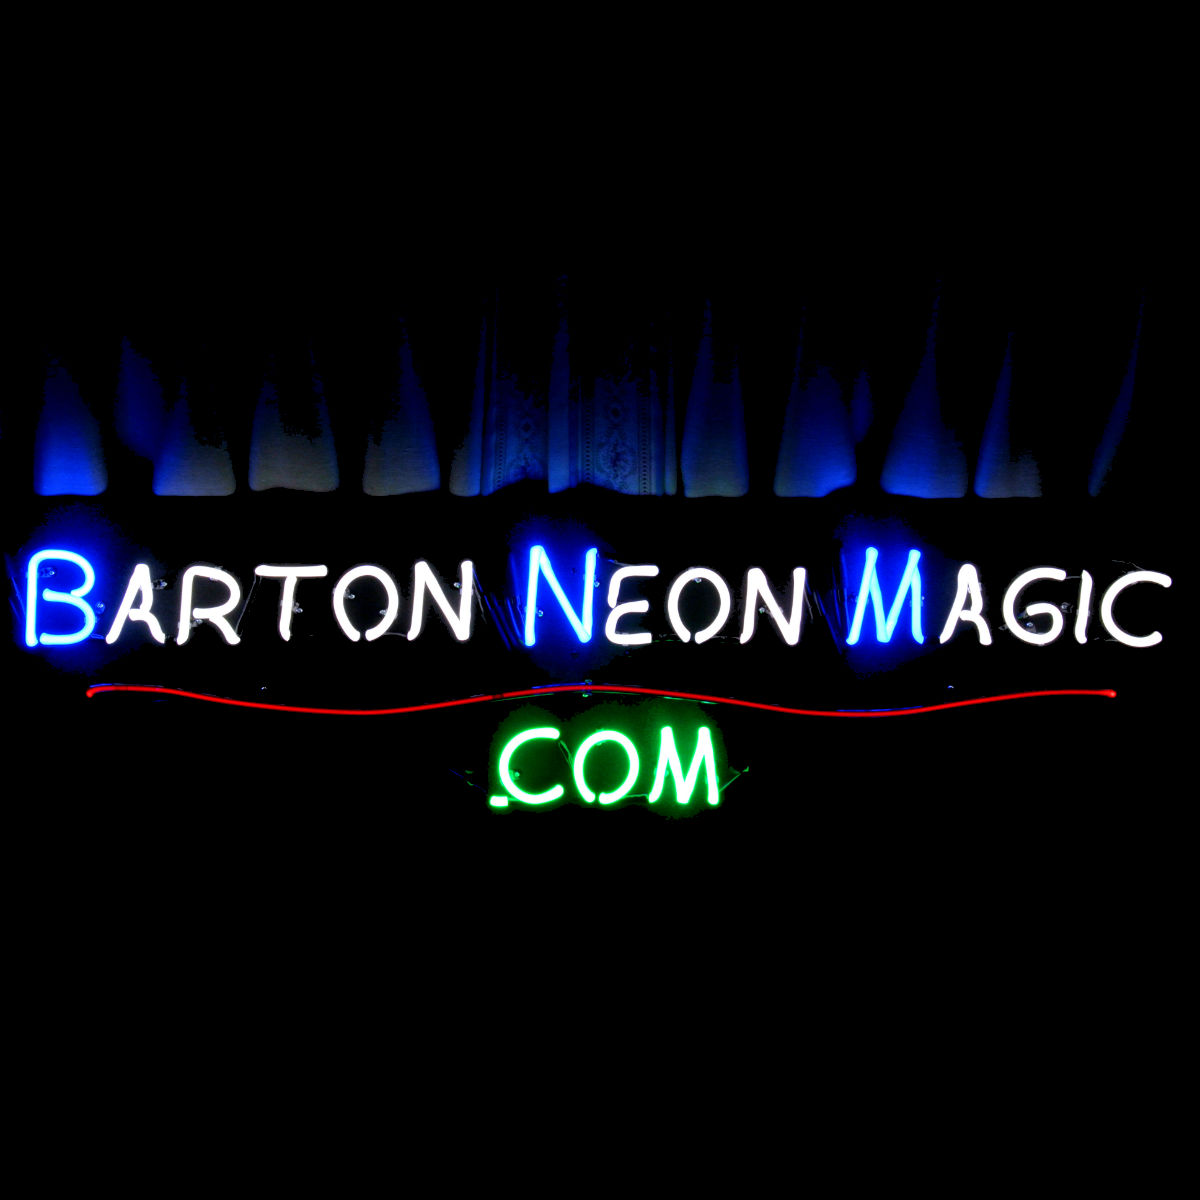 Custom hand-blown Aviation Neon Light Sculptures by John Barton - BartonNeonMagic.com